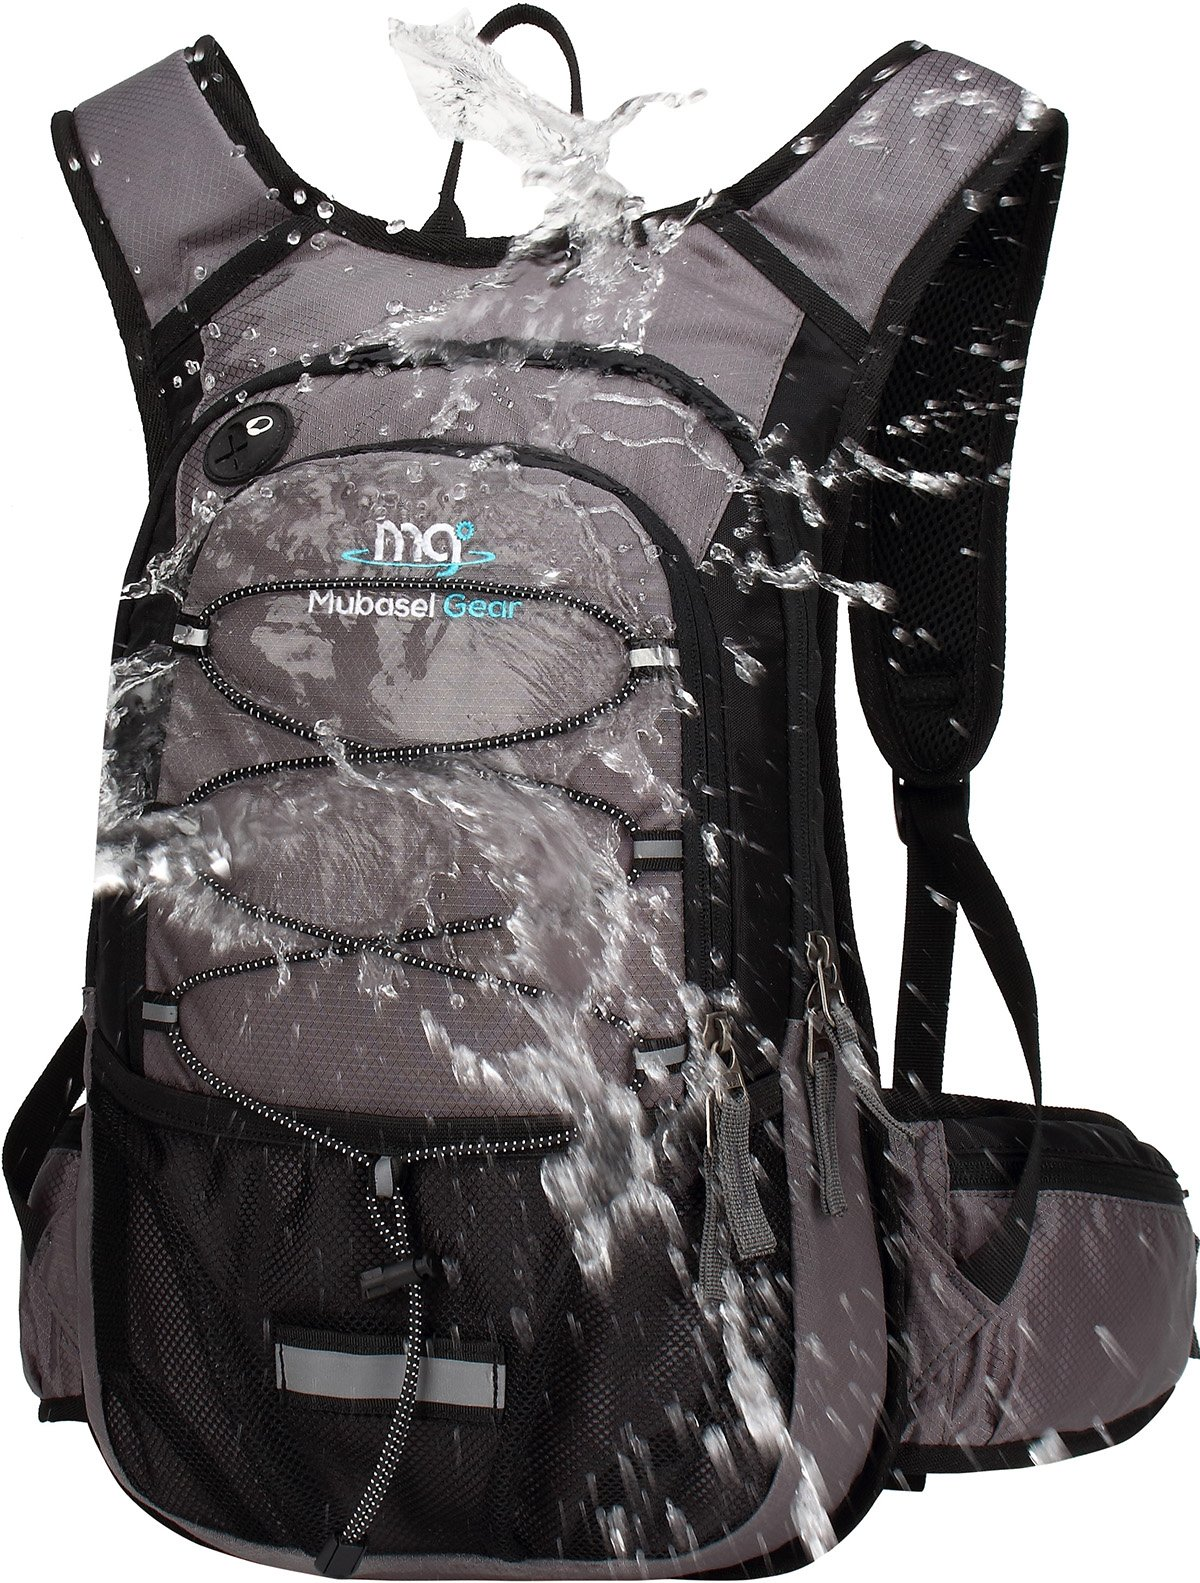 Mubasel Gear Insulated Hydration Backpack Pack with 2L BPA Free Bladder - Keeps Liquid Cool up to 4 Hours - for Running, Hiking, Cycling, Camping (Grey) by Mubasel Gear